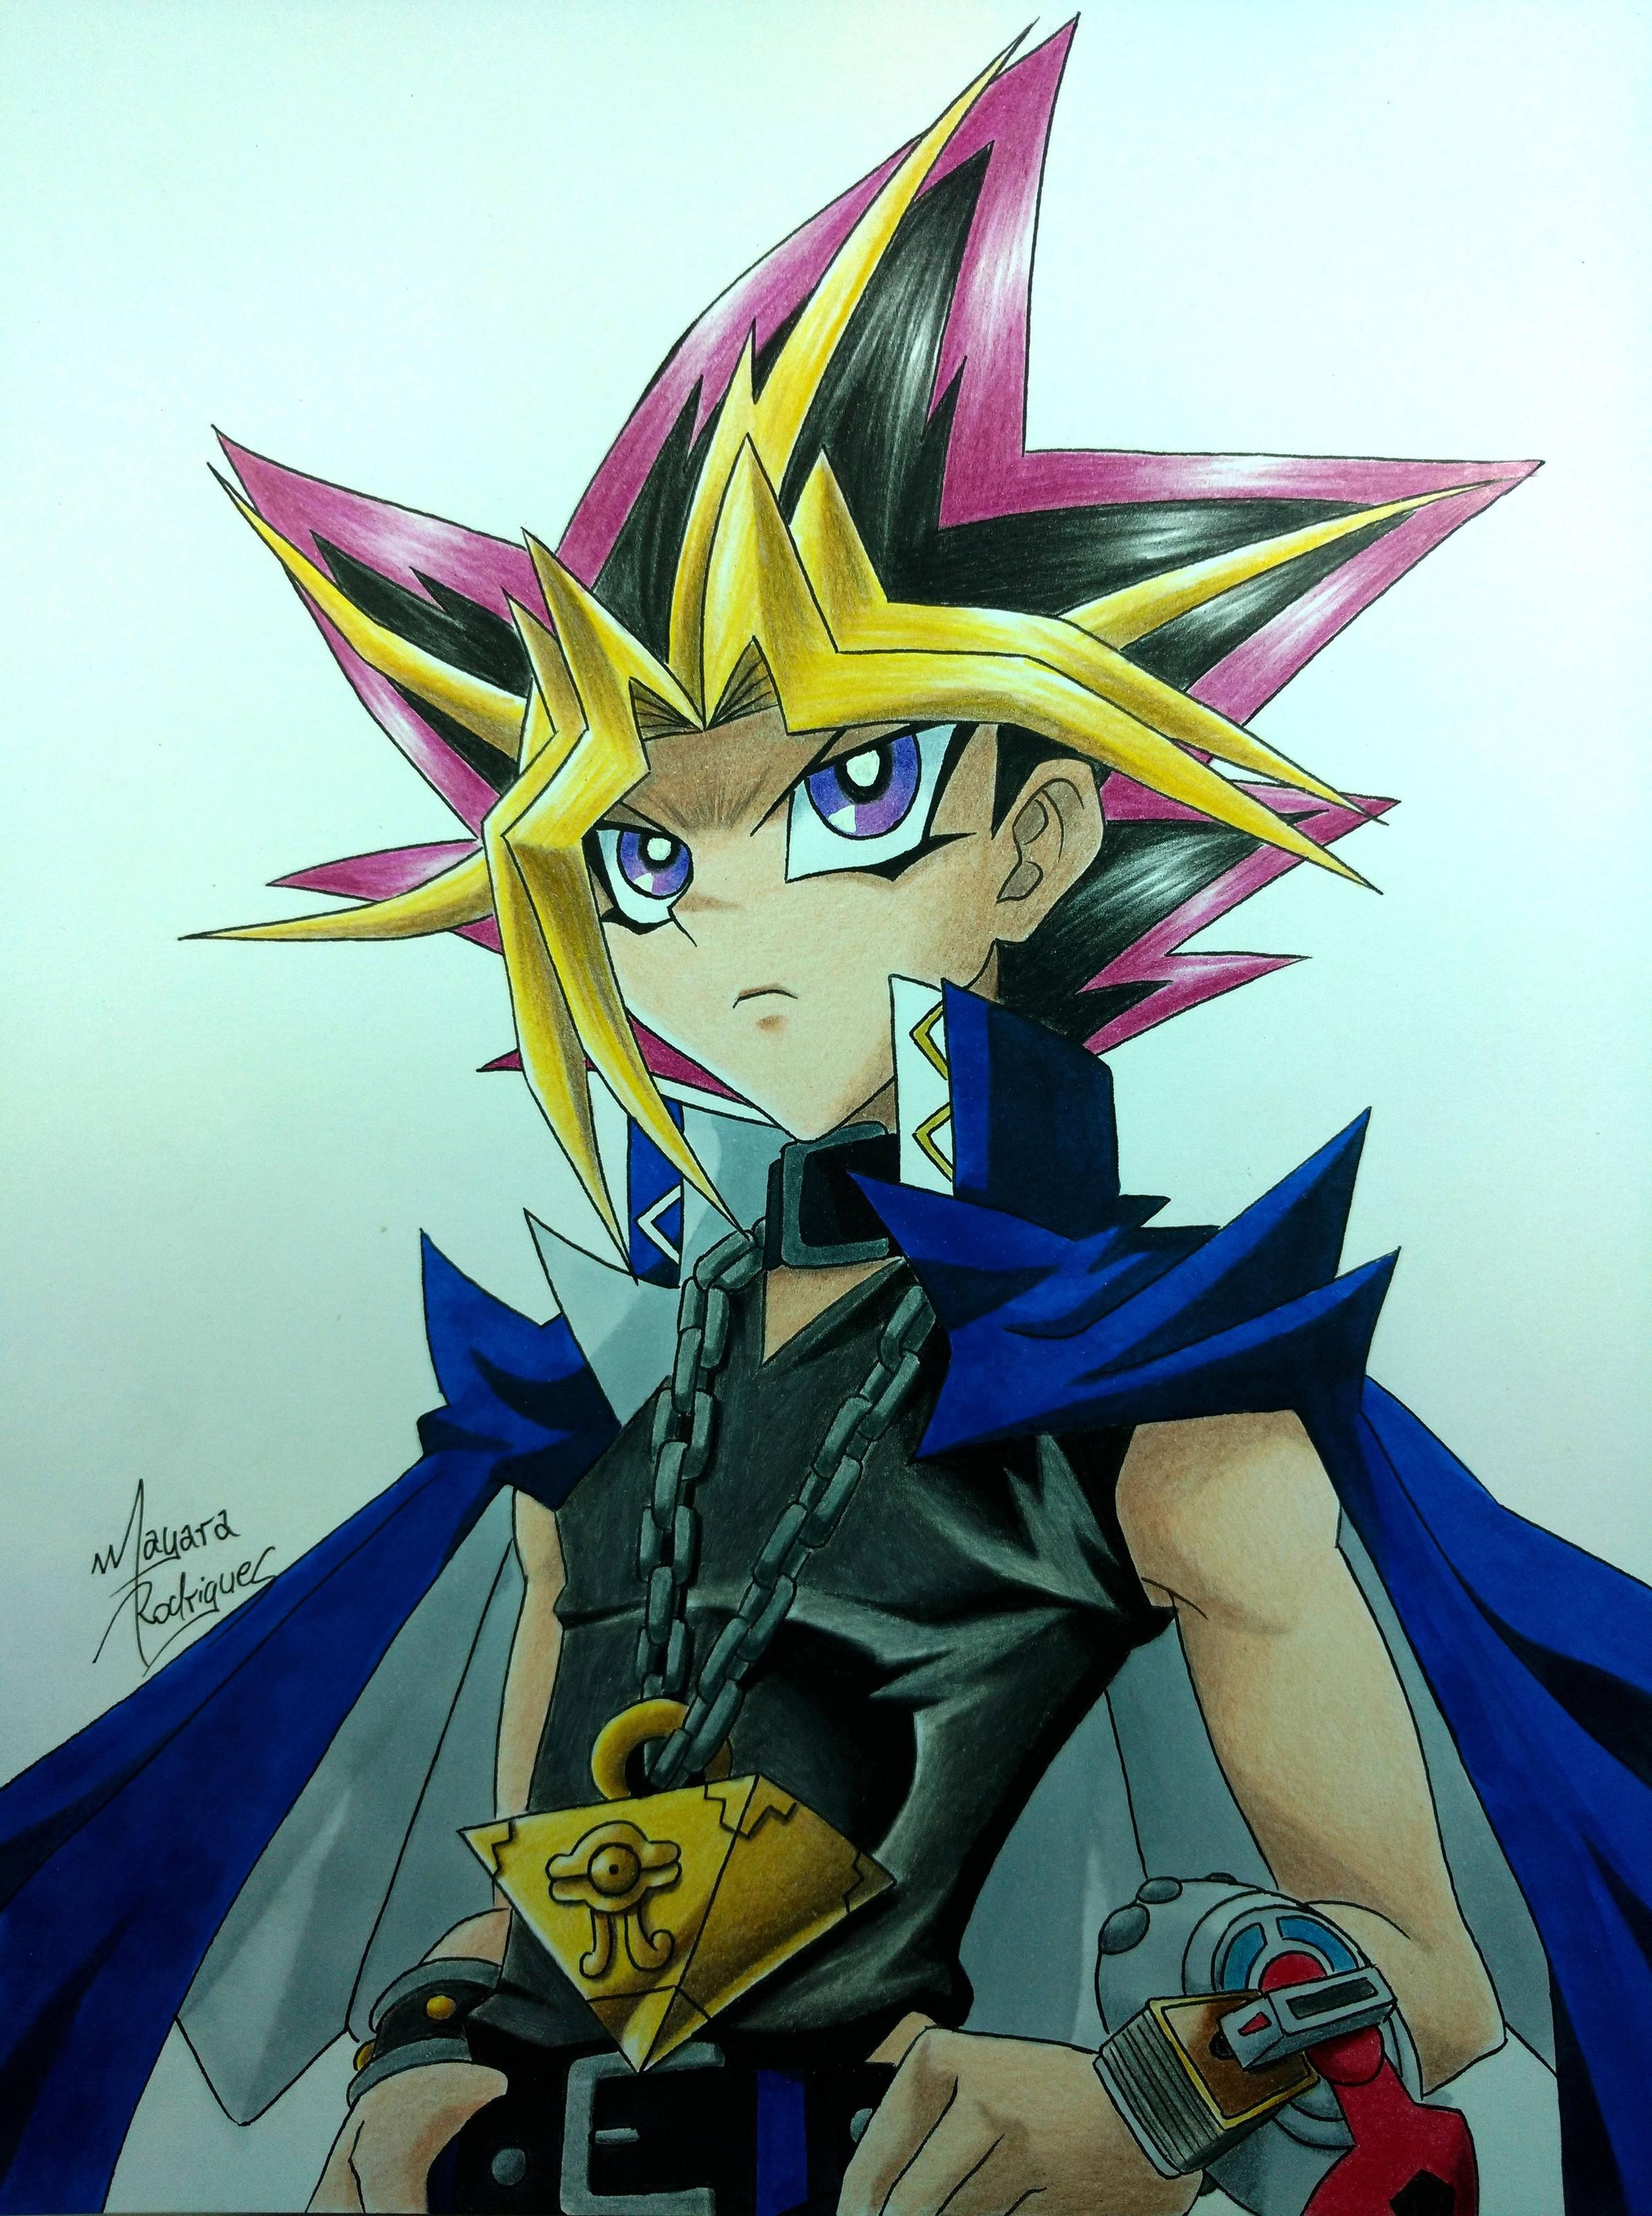 Yami Yugi (YU-GI-OH!) by Mayara Rodrigues  link for more arts anime Mayara Rodrigues:: https://www.facebook.com/mayararodriguesdrawings channel on  Youtube: https://www.youtube.com/channel/UC2Ut6zaH-dENocDPTaAd5-A